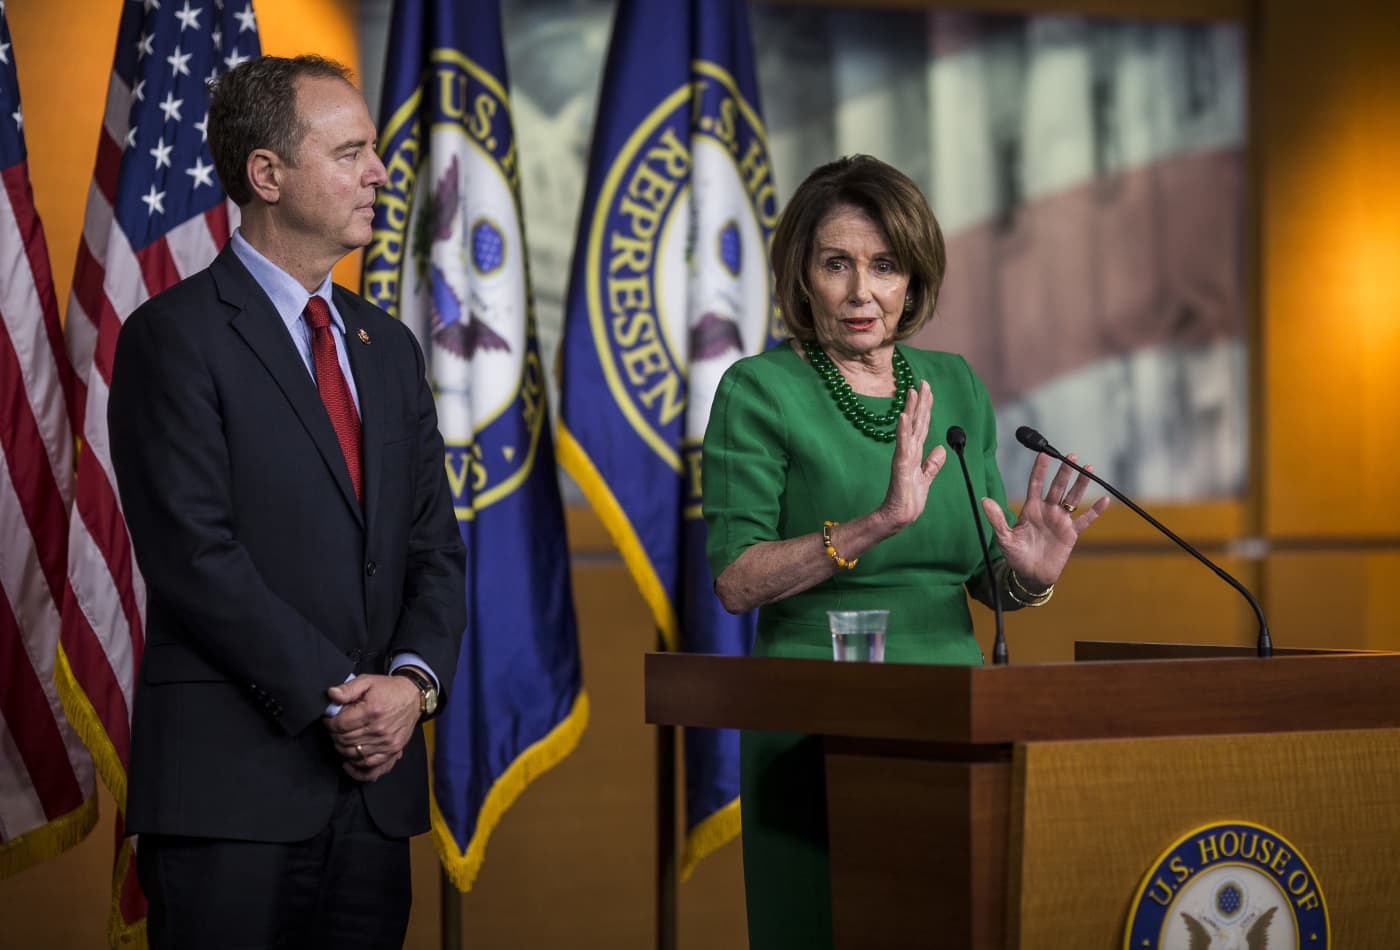 House Democrats will not hold a vote authorizing impeachment probe, which White House sought